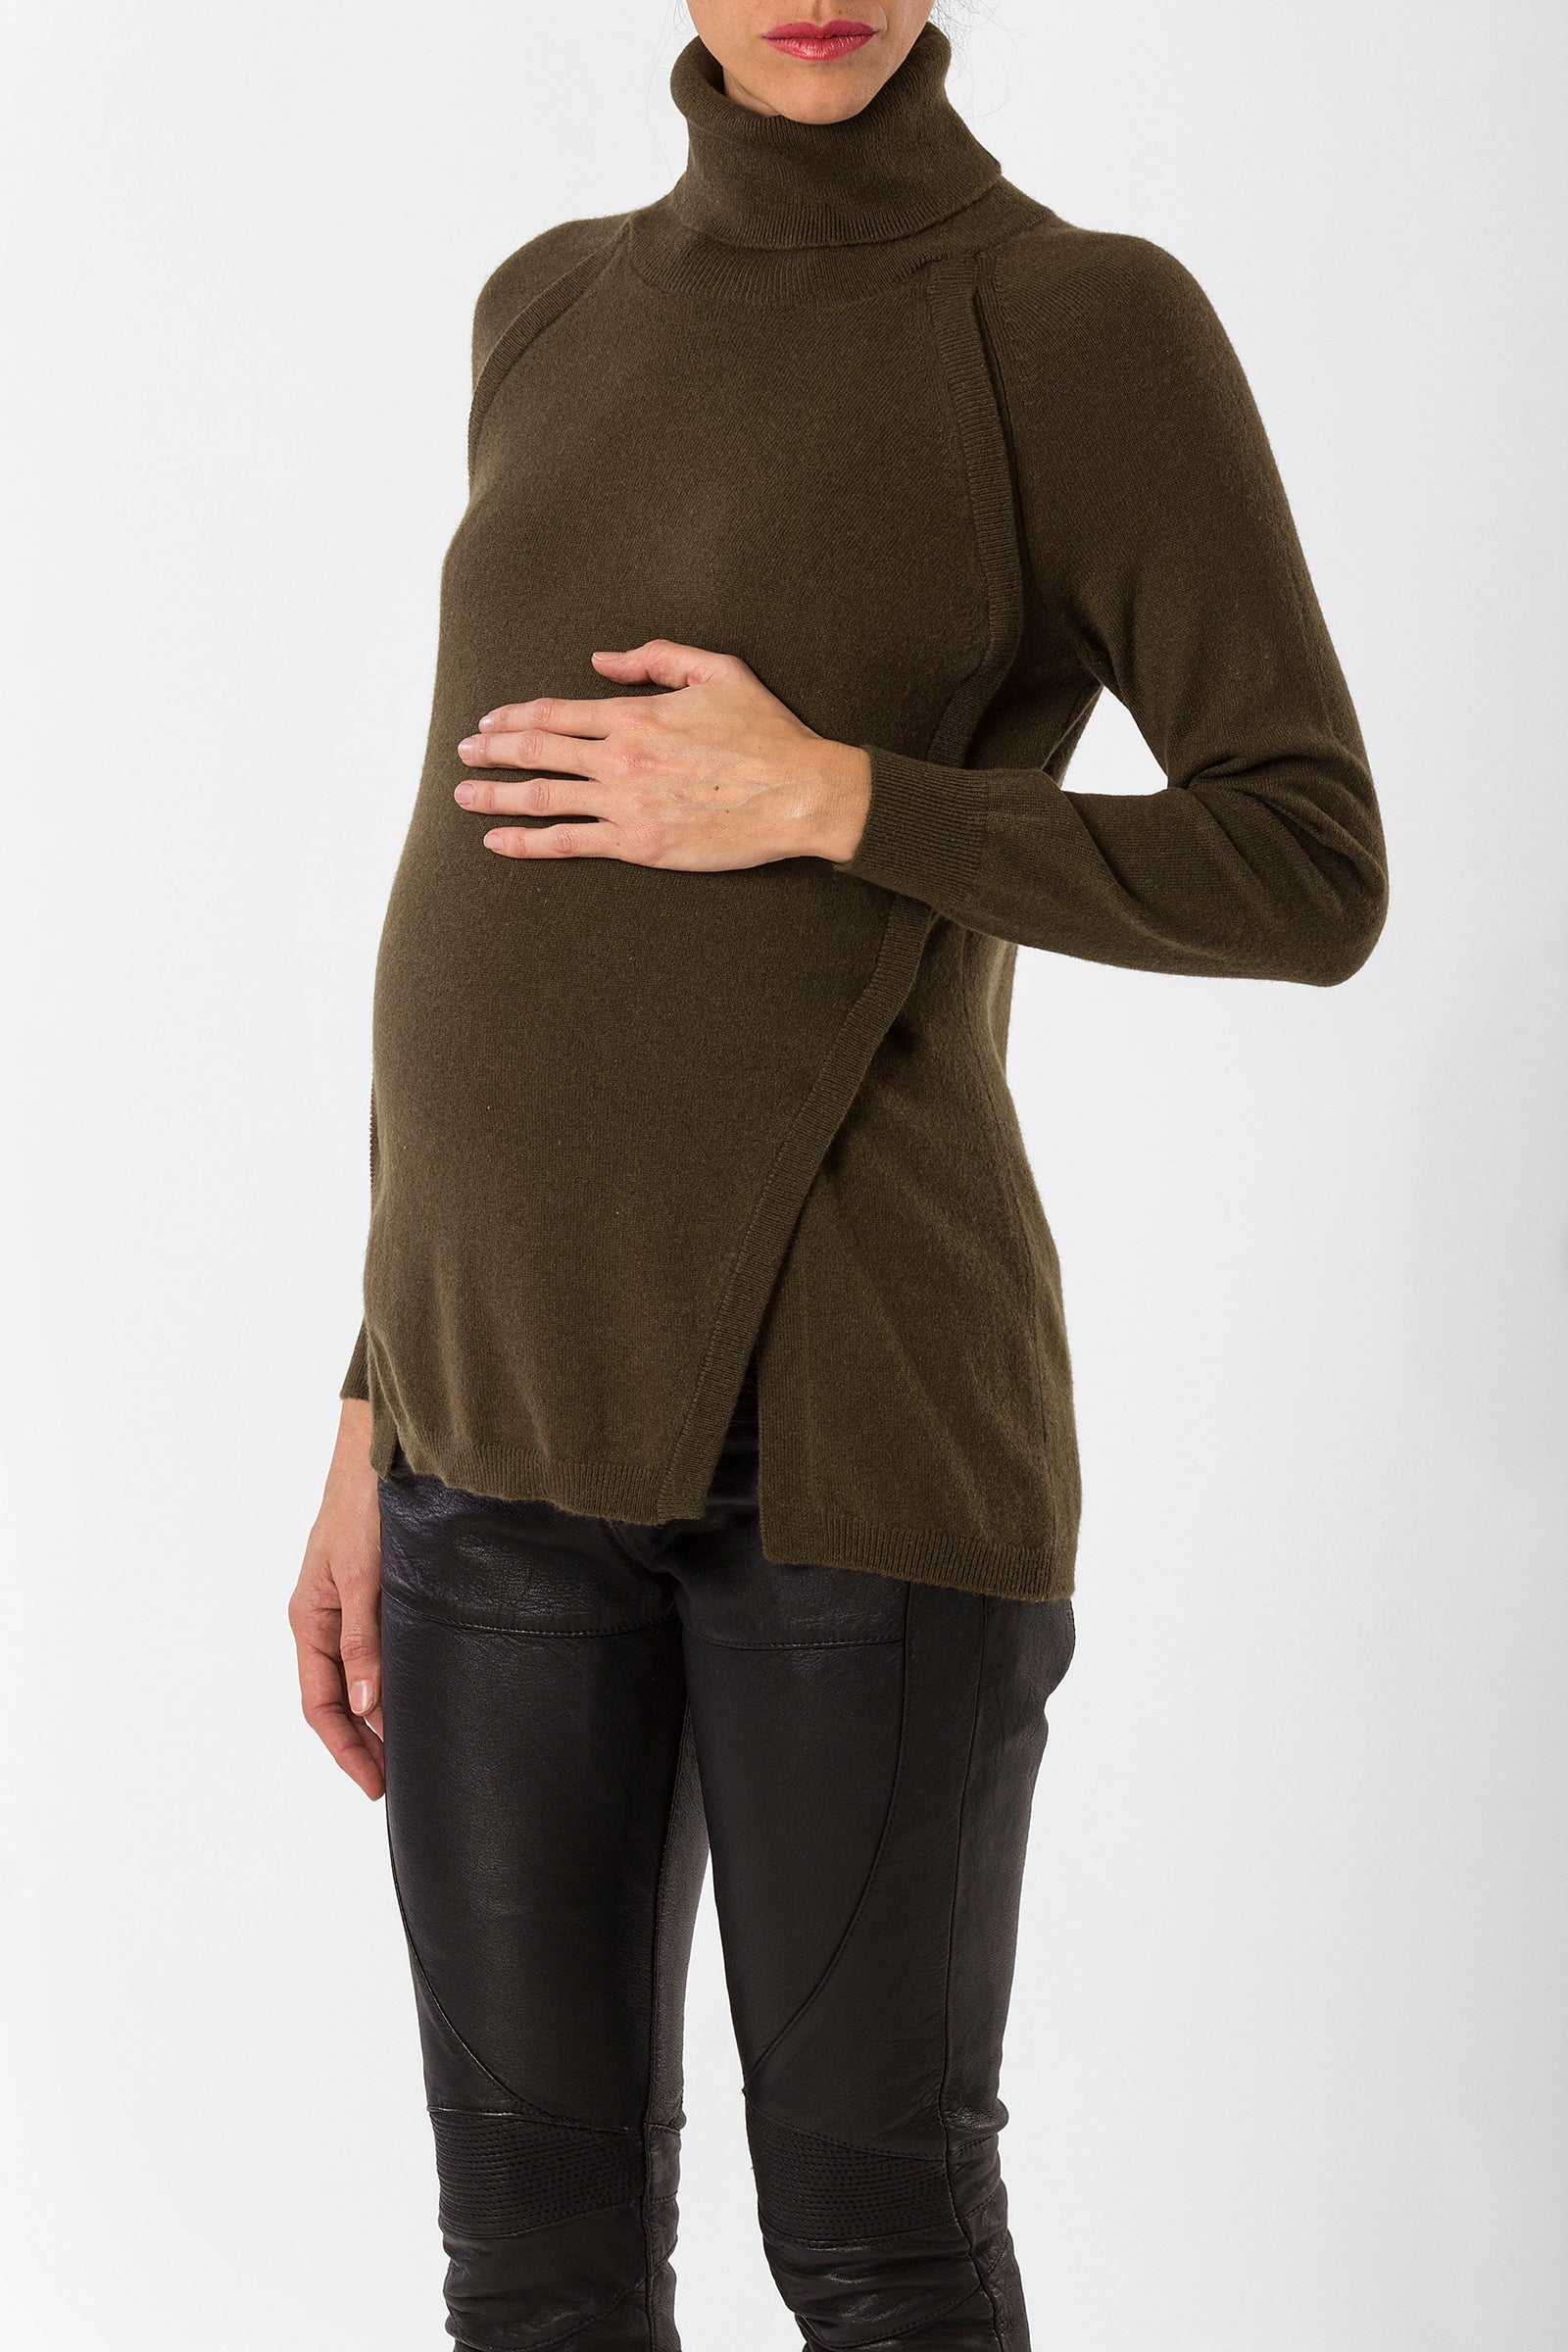 76d7142147a katelyn turtleneck - nursing sweater - cashmere turtleneck - military